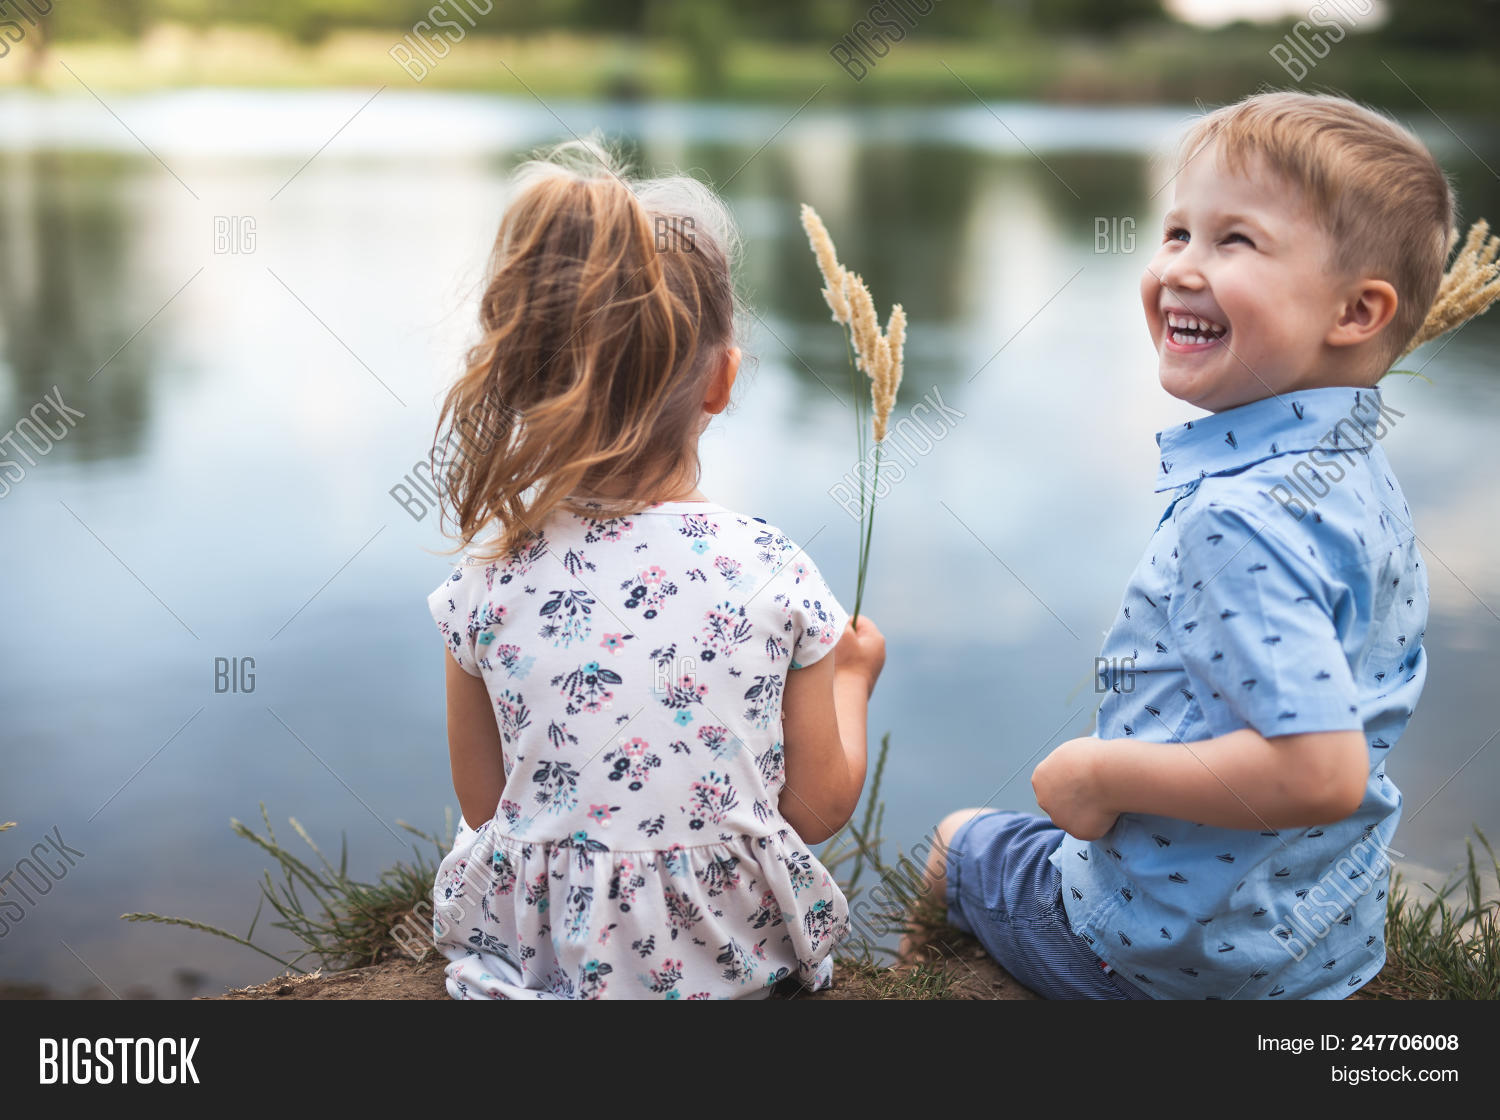 Your Happy Couple Of Kids, Boy Gives Wheat Spikelets Girl. Children Are Sitting Near Lake, Outdoor At Park. Autumn And Summer Season. Happy Family Values. Children's Health Care